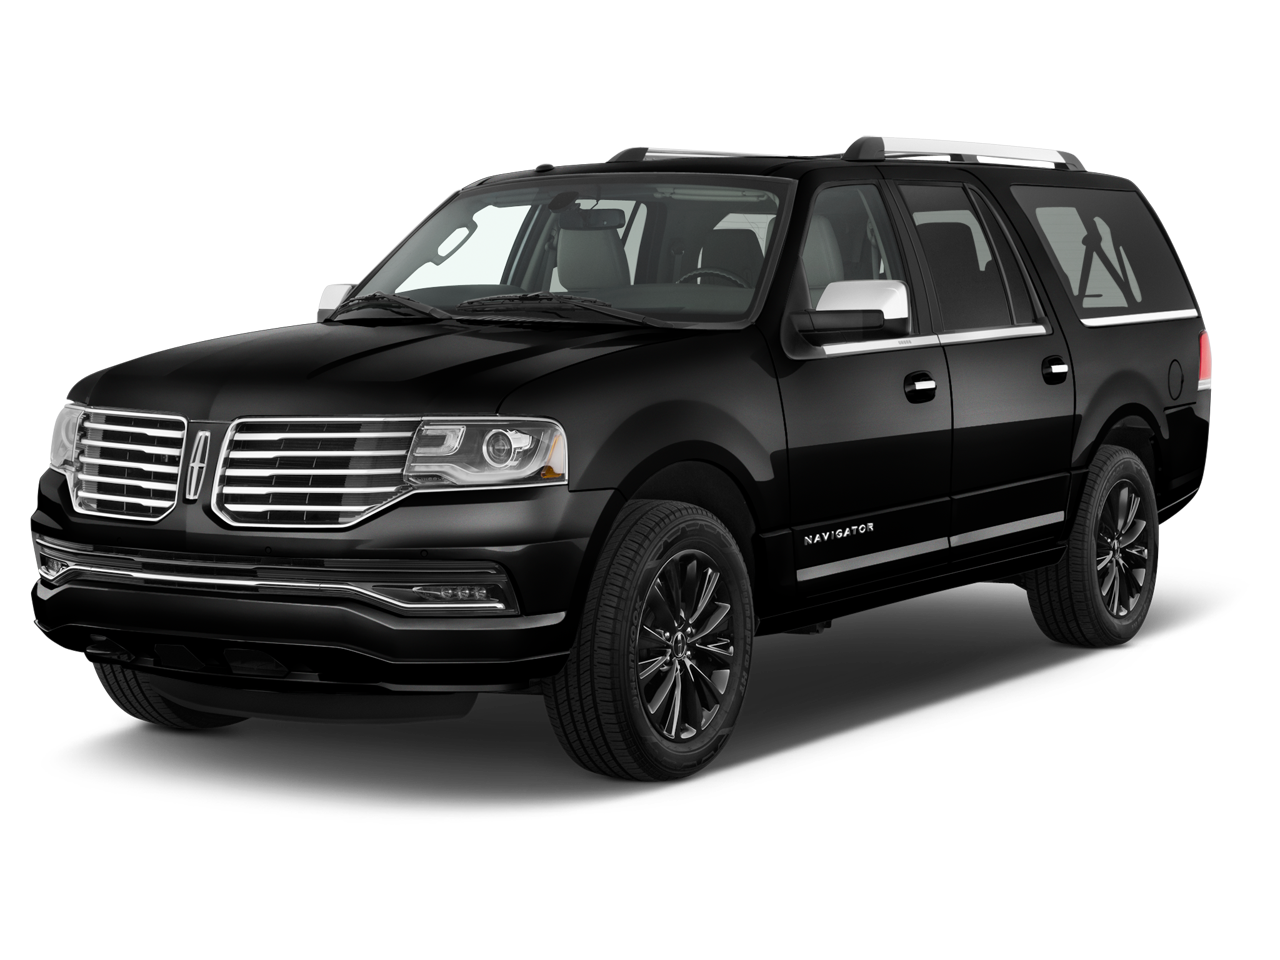 new 2017 lincoln navigator l l select near oklahoma city ok joe cooper auto group. Black Bedroom Furniture Sets. Home Design Ideas